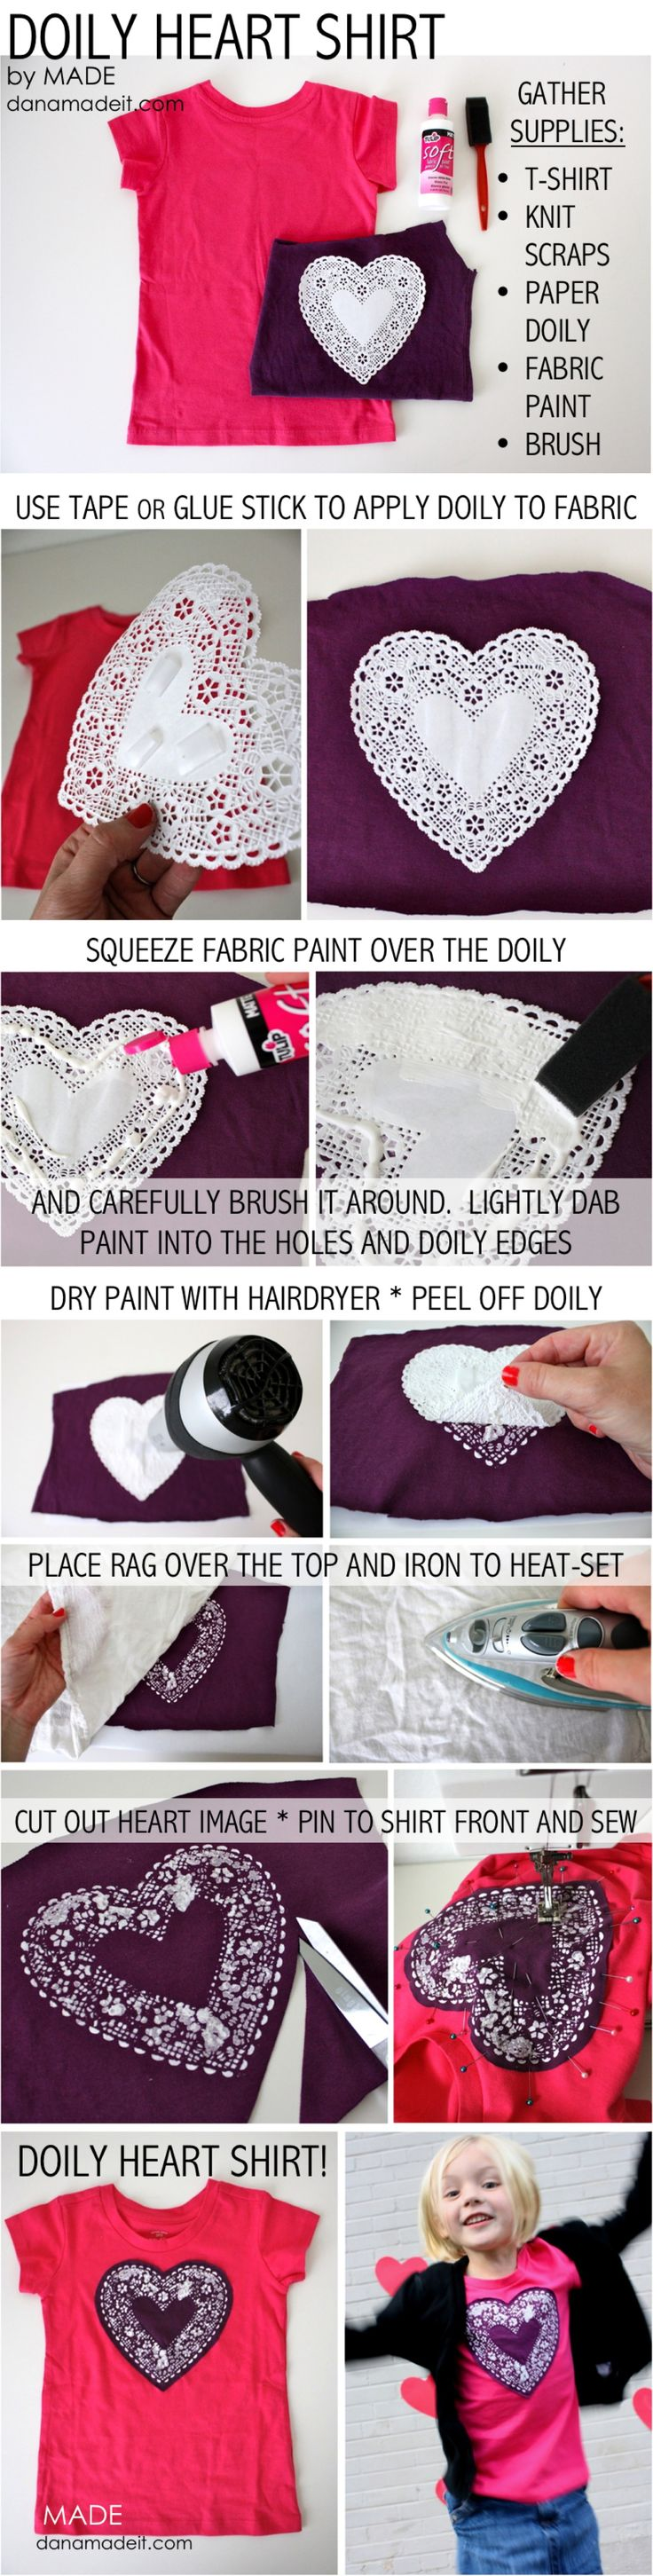 Doily Heart Shirt tutorial